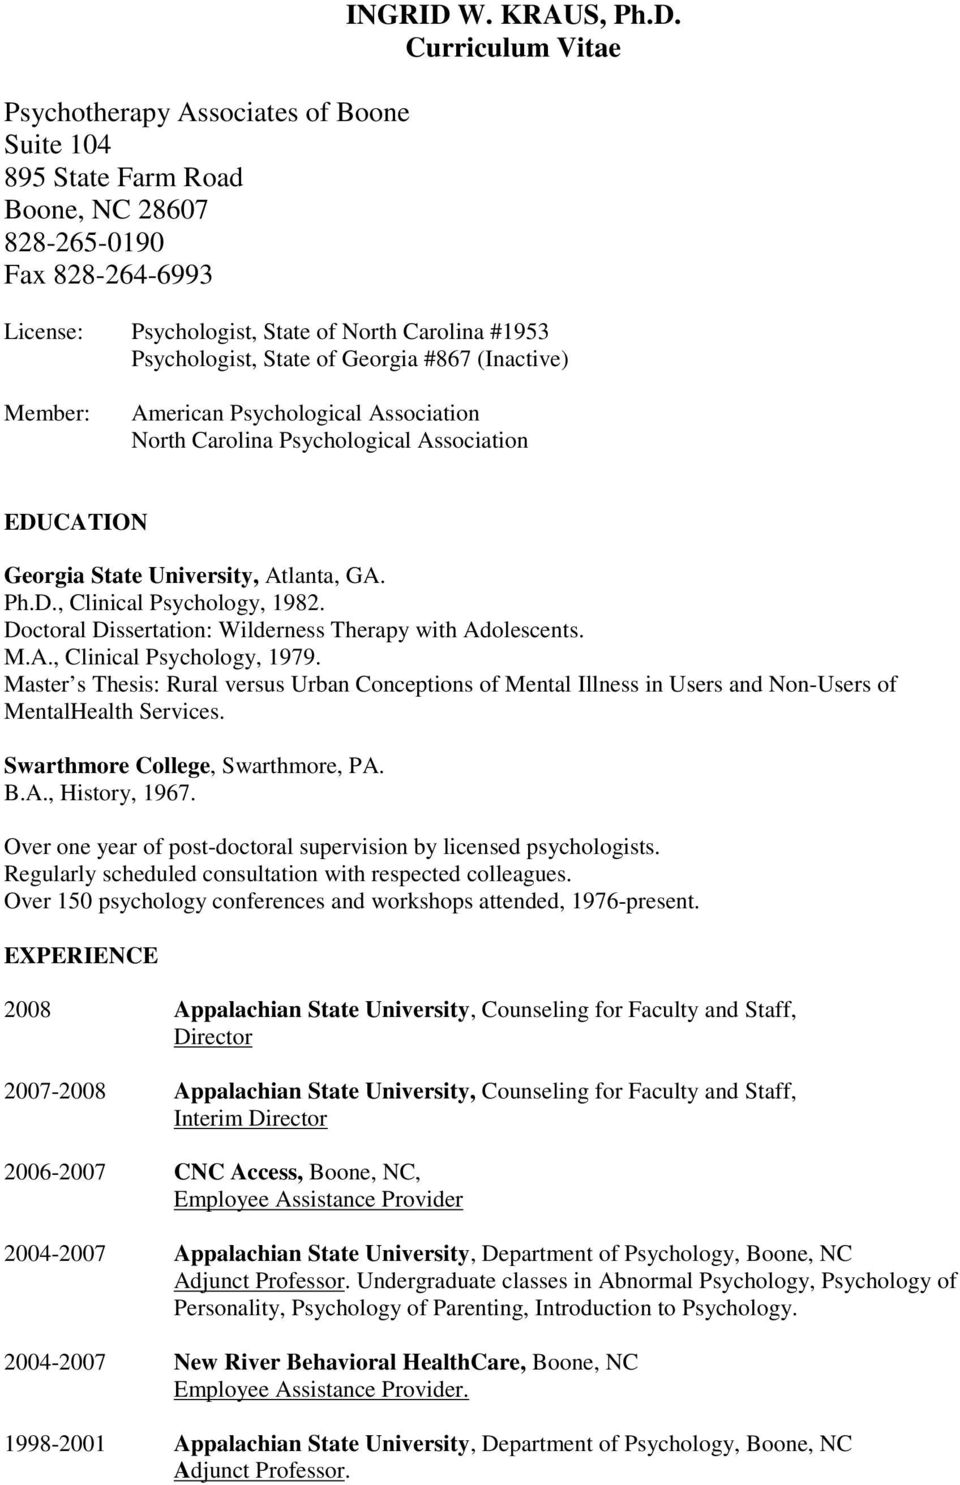 Curriculum Vitae License: Psychologist, State of North Carolina #1953 Psychologist, State of Georgia #867 (Inactive) Member: American Psychological Association North Carolina Psychological